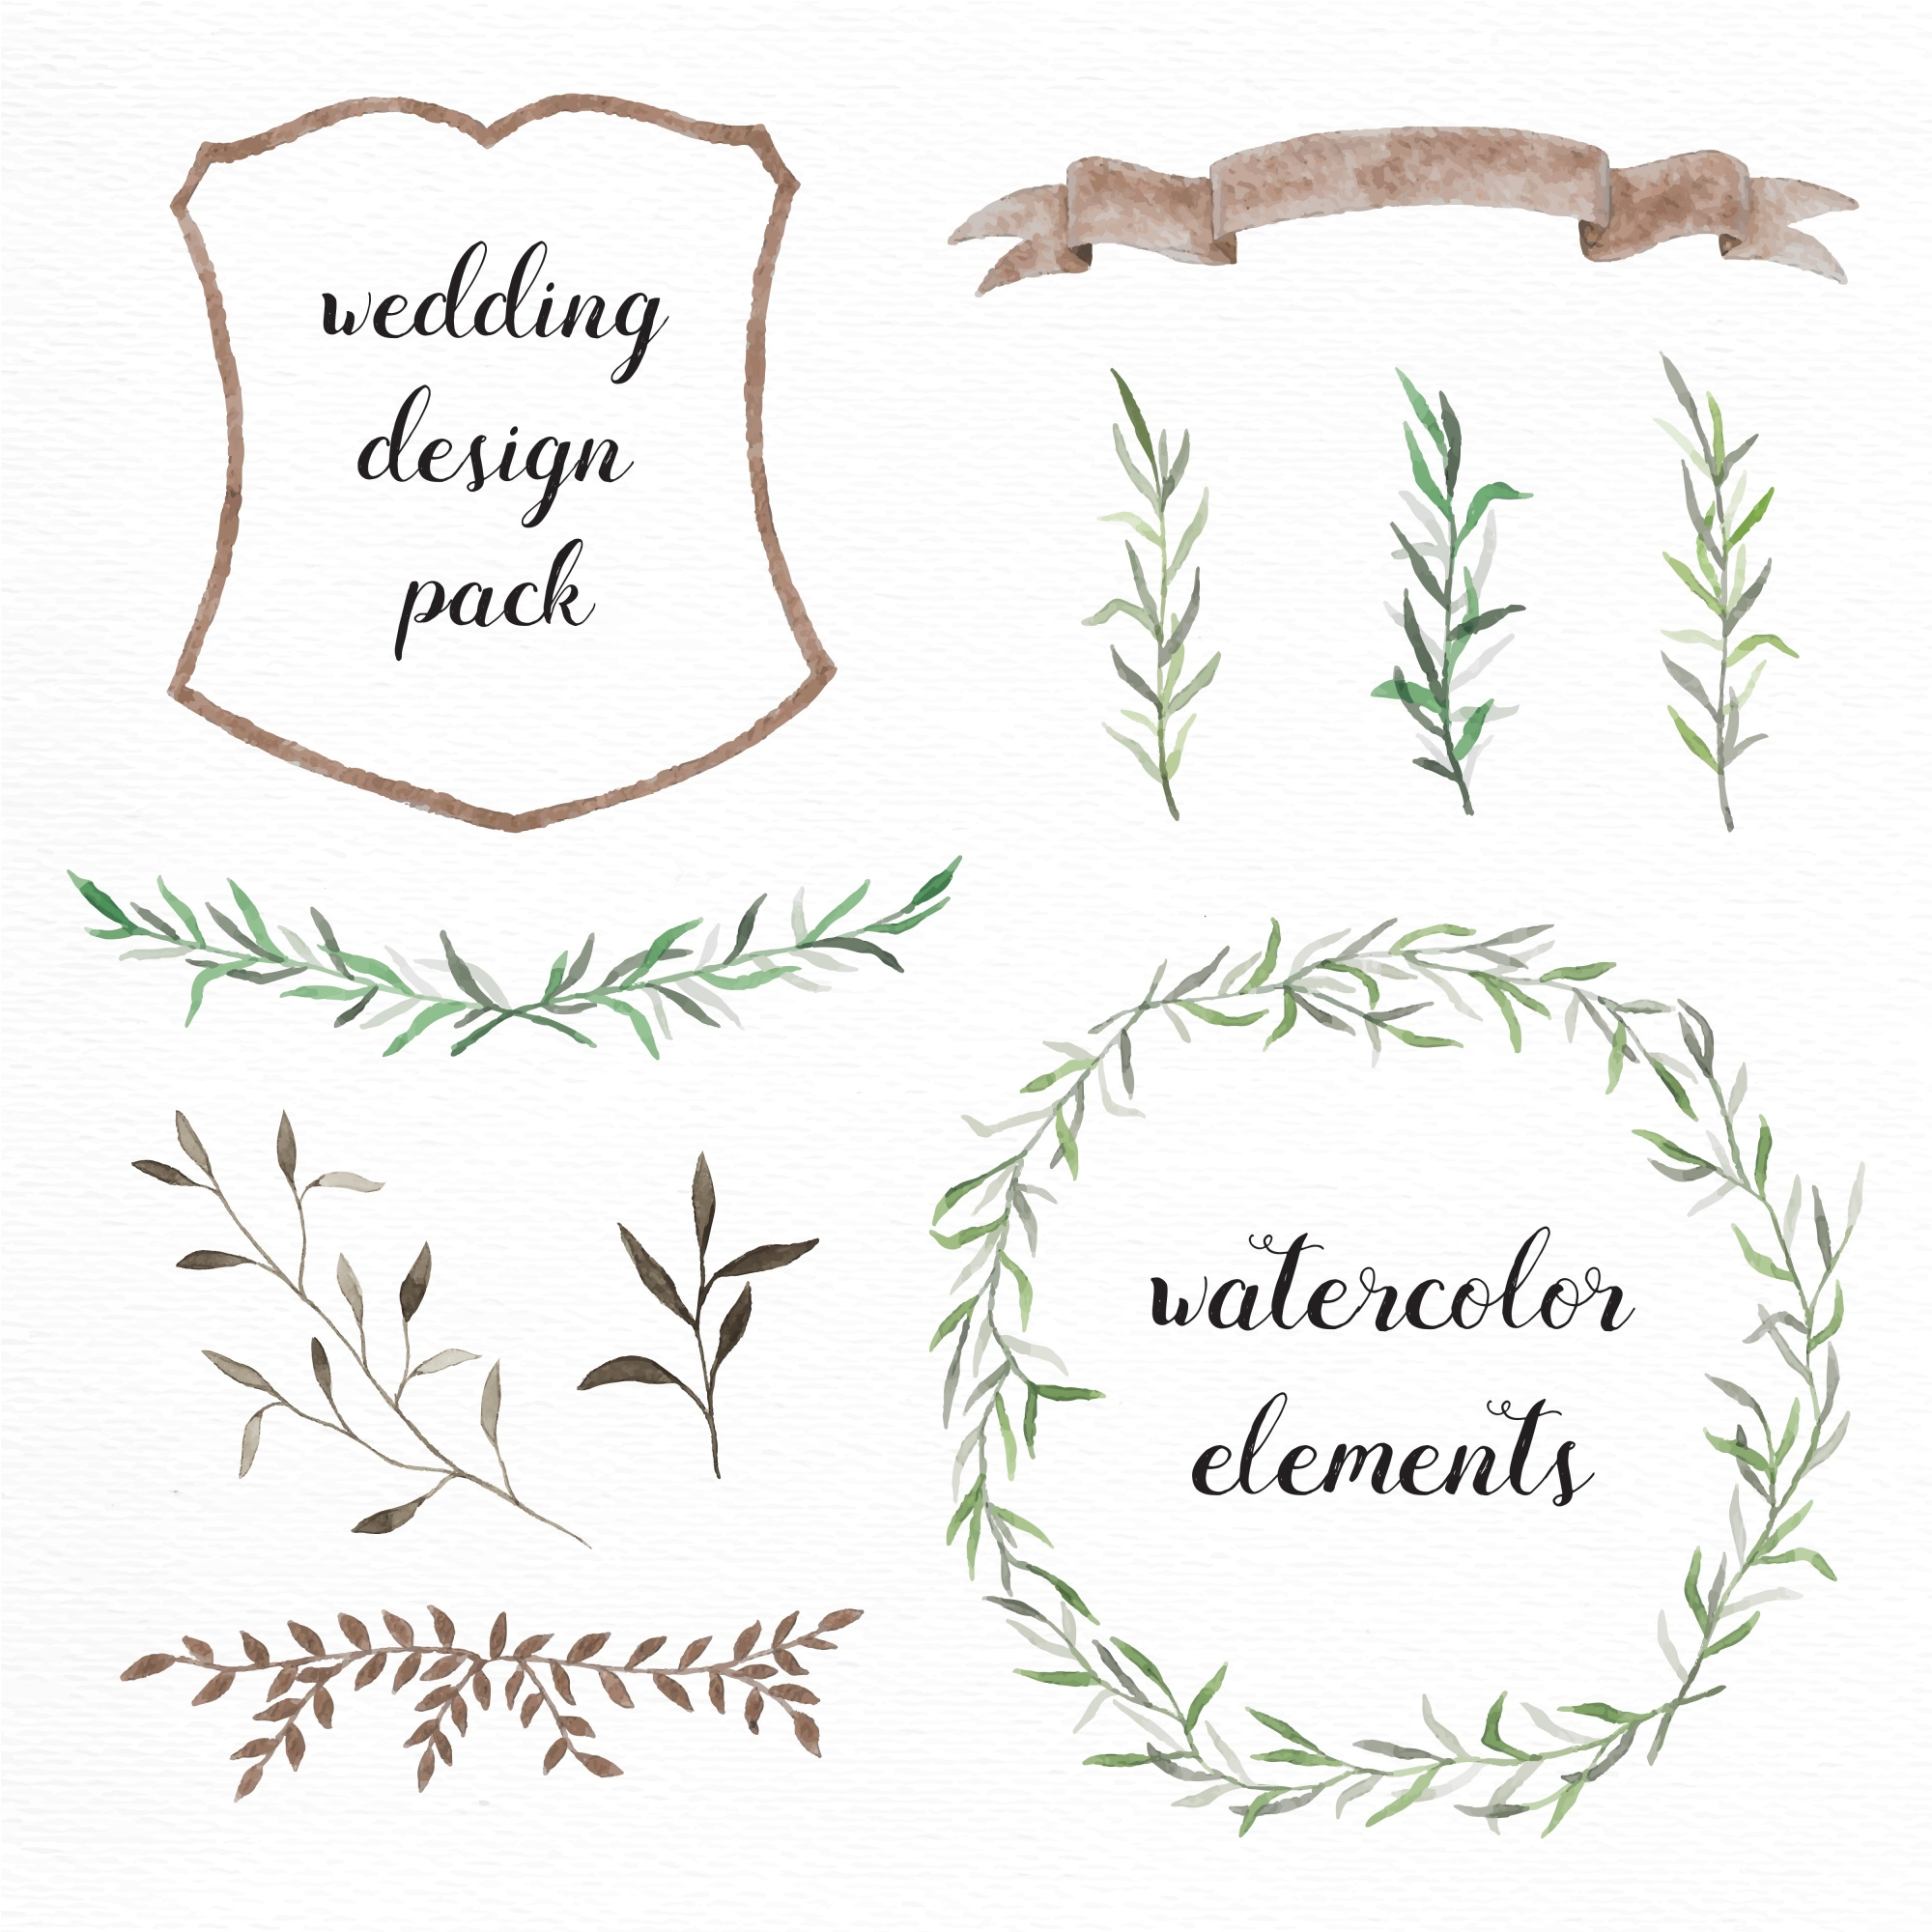 Hand painted wedding elements